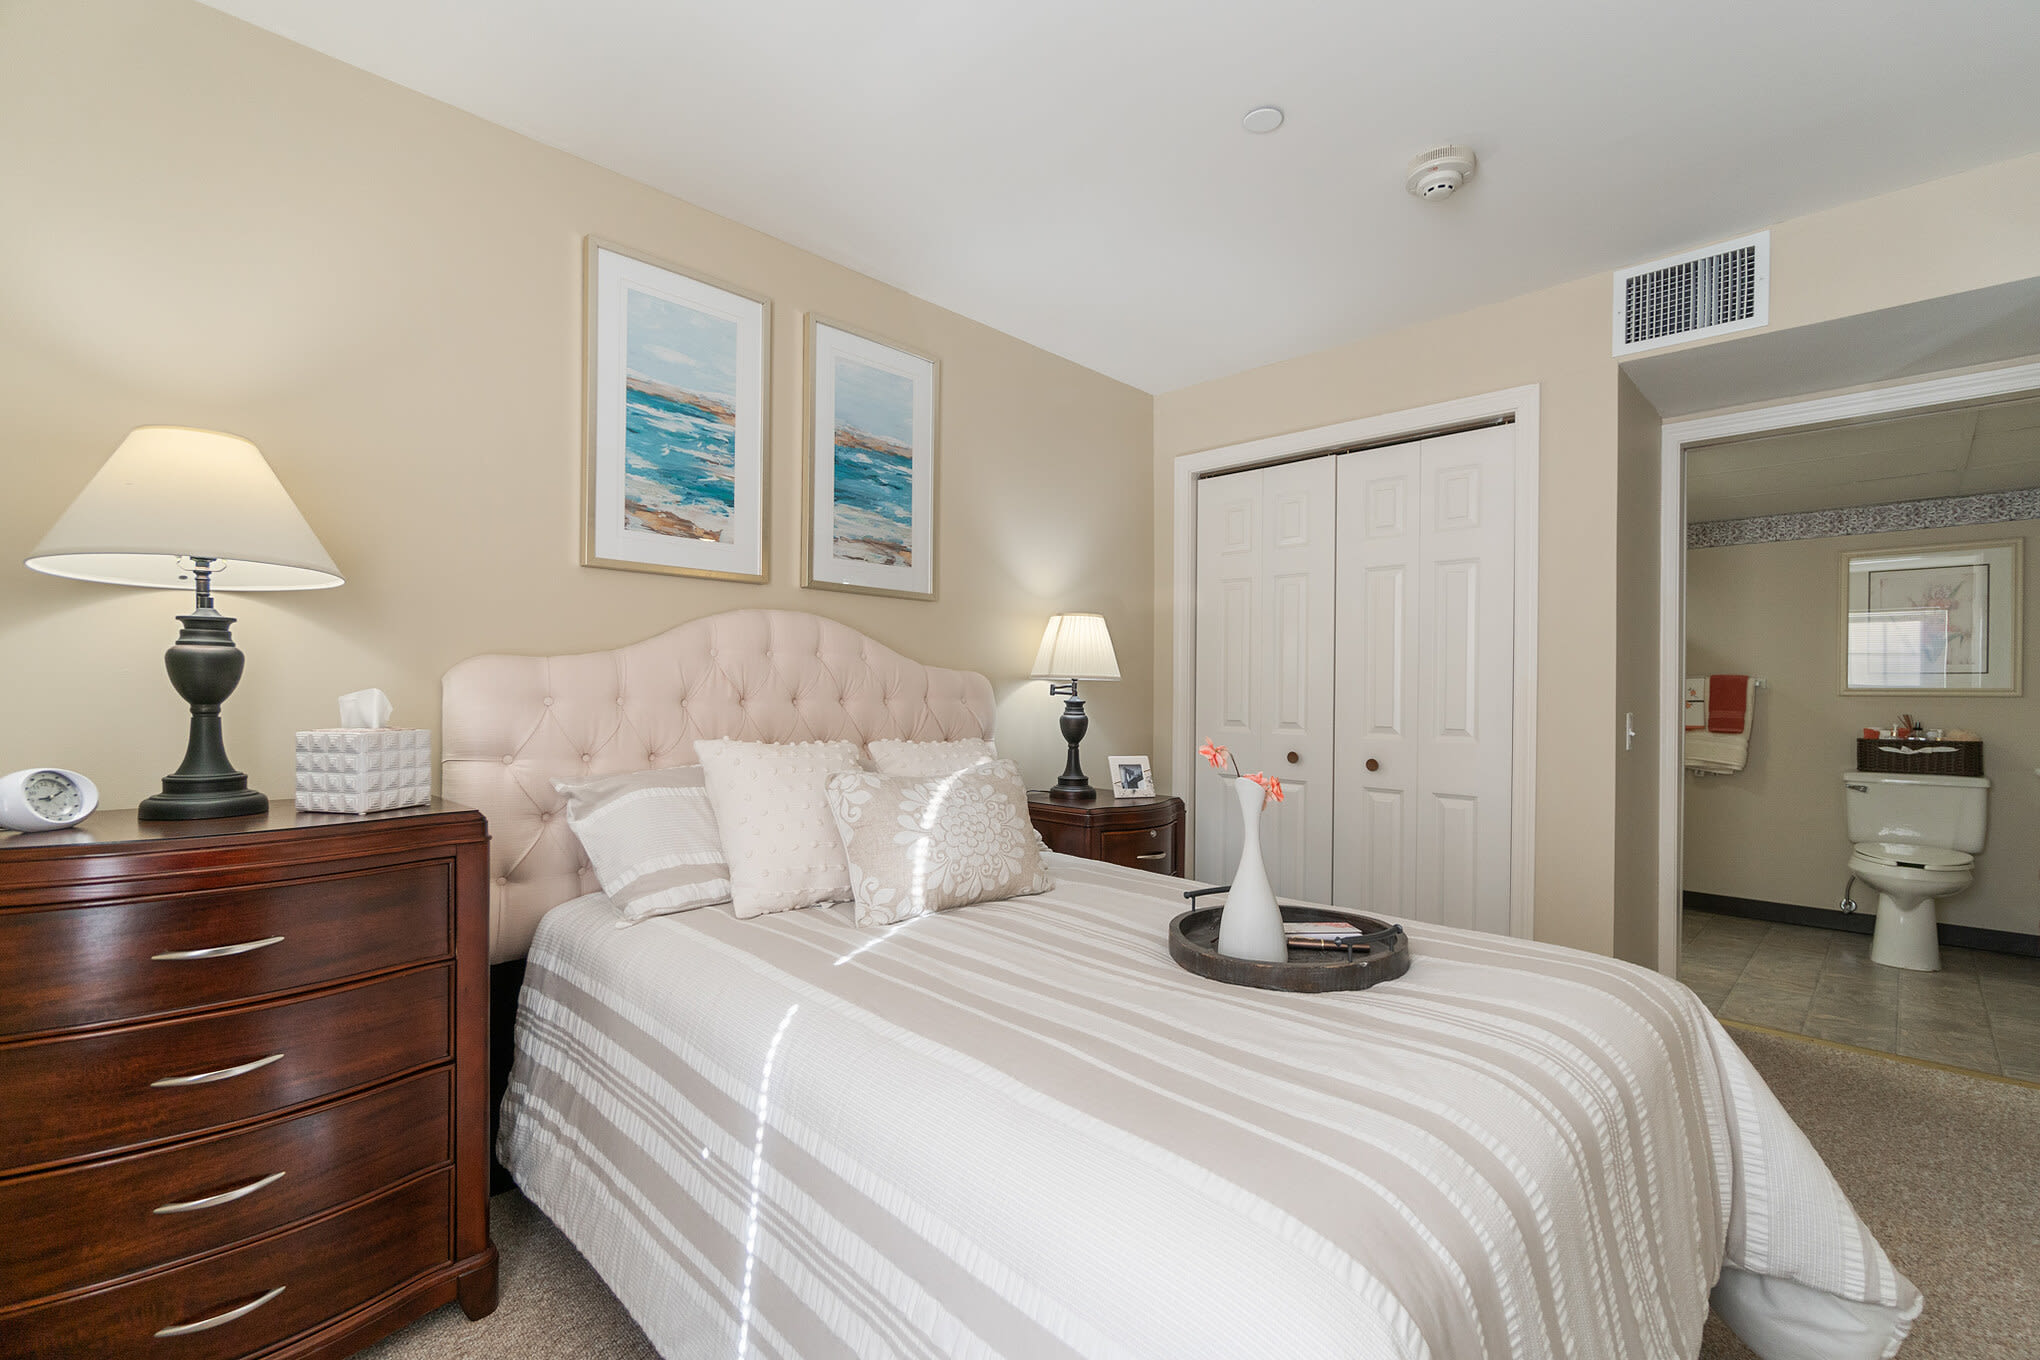 Senior apartment bedroom at The Hearth at Gardenside in Branford, Connecticut